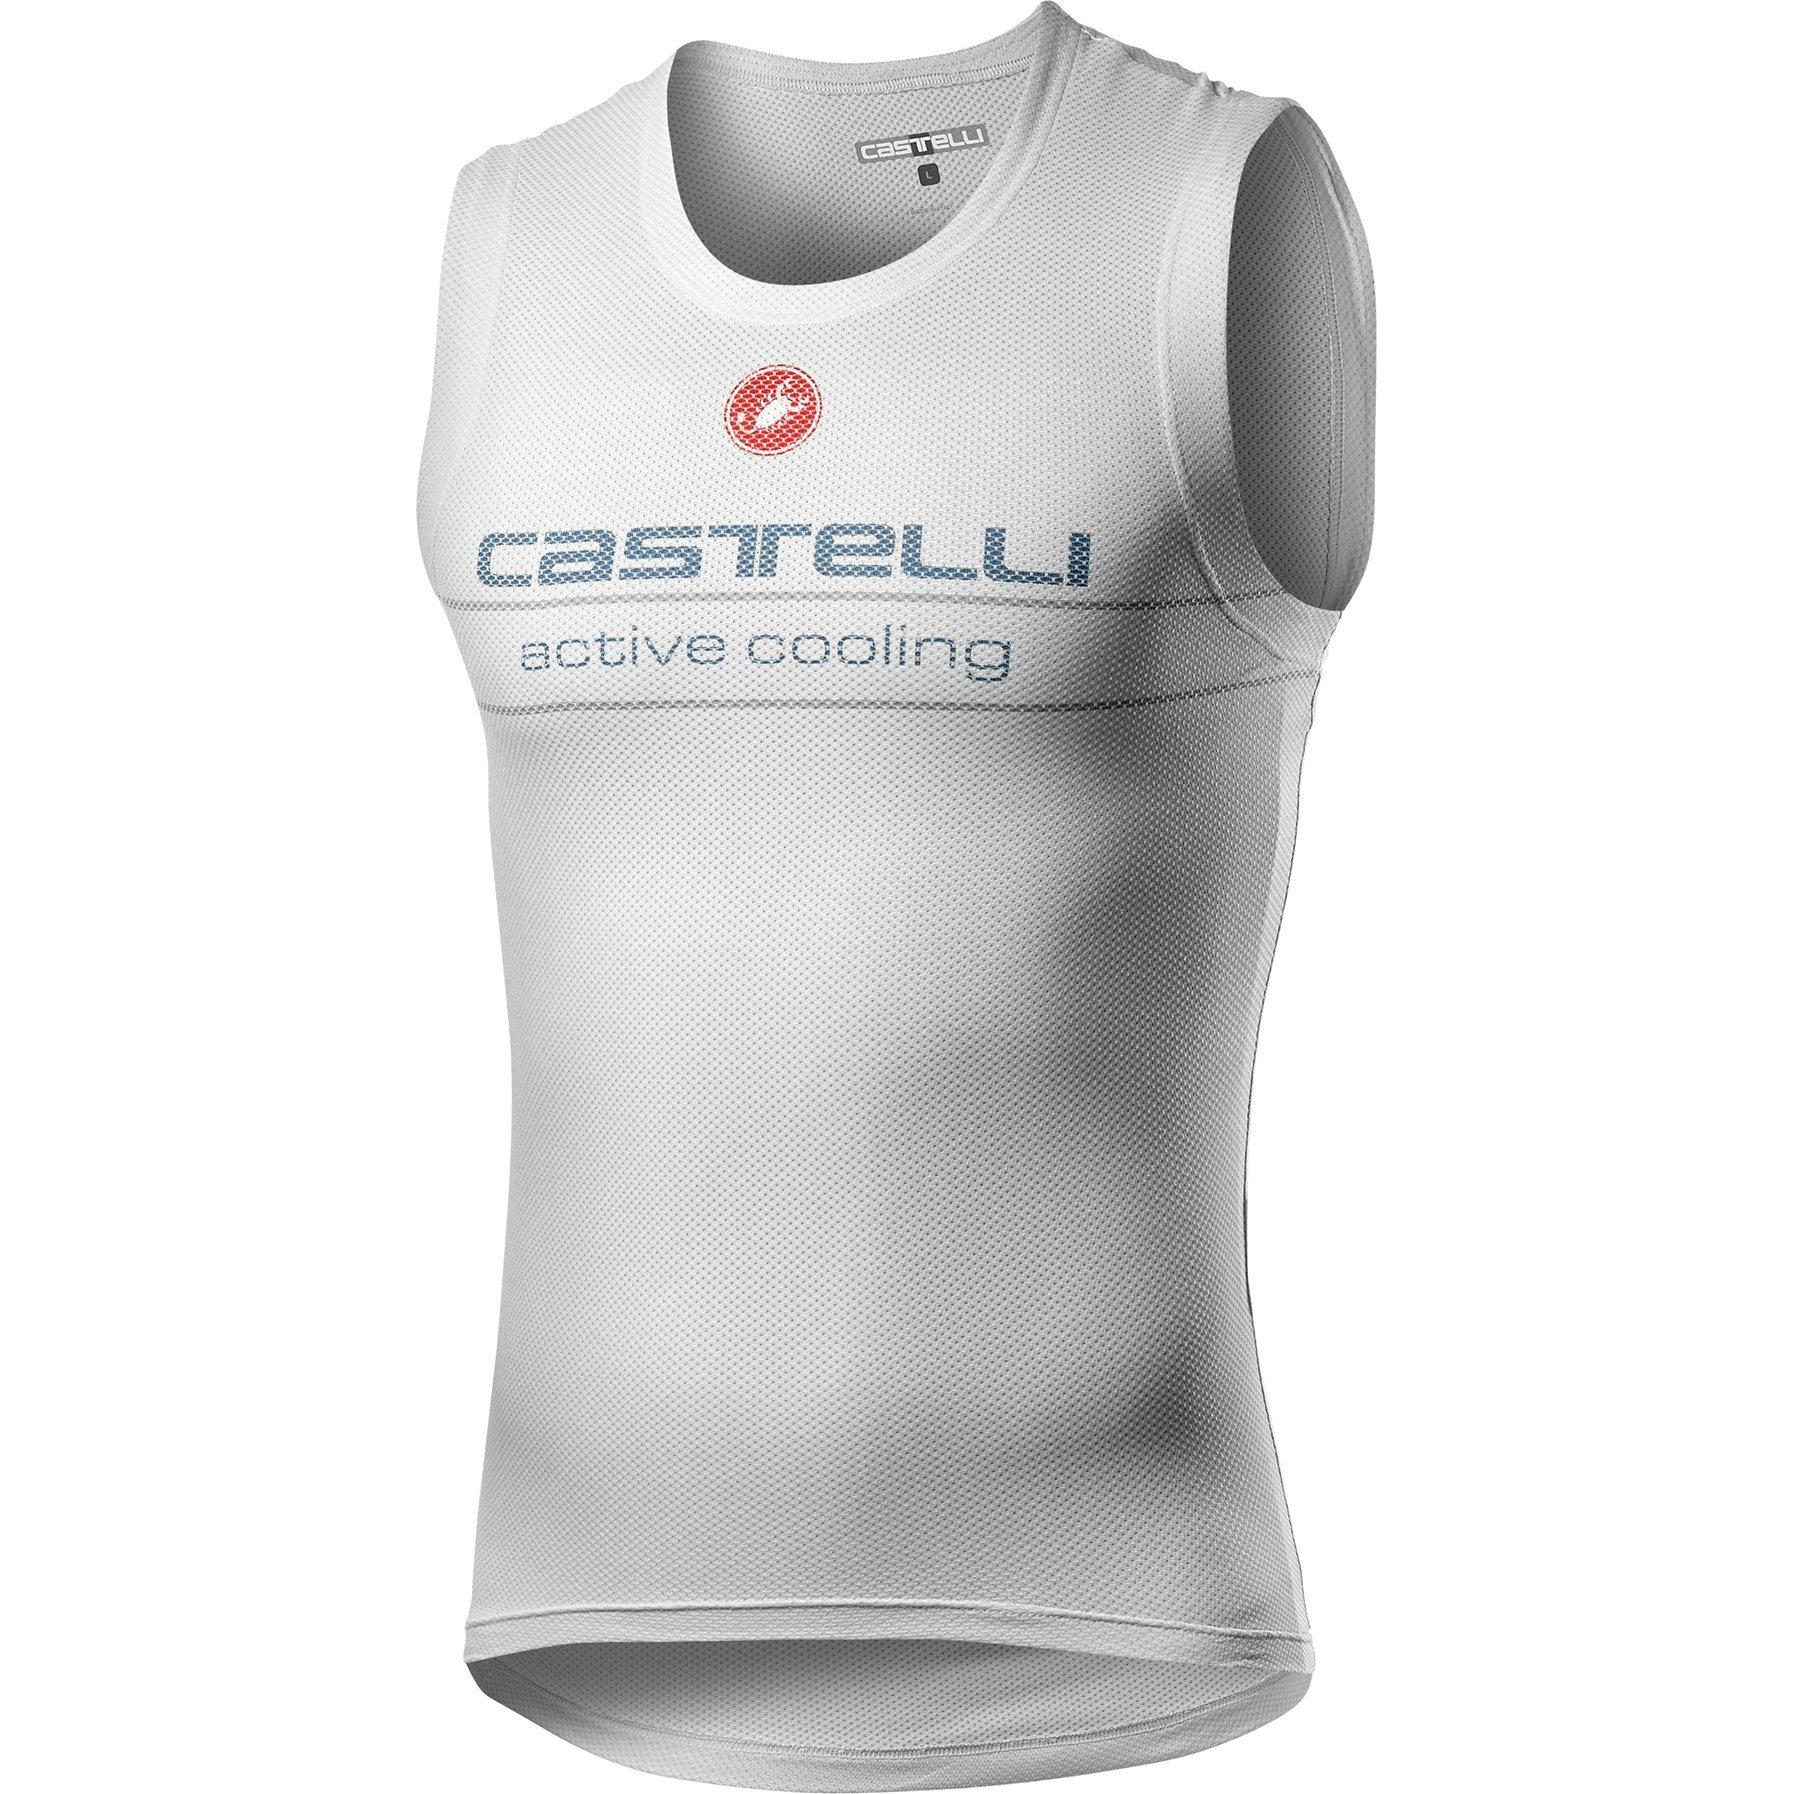 Castelli-Castelli Active Cooling Sleeveless Base Layer-Silver Gray-XS-CS200308701-saddleback-elite-performance-cycling